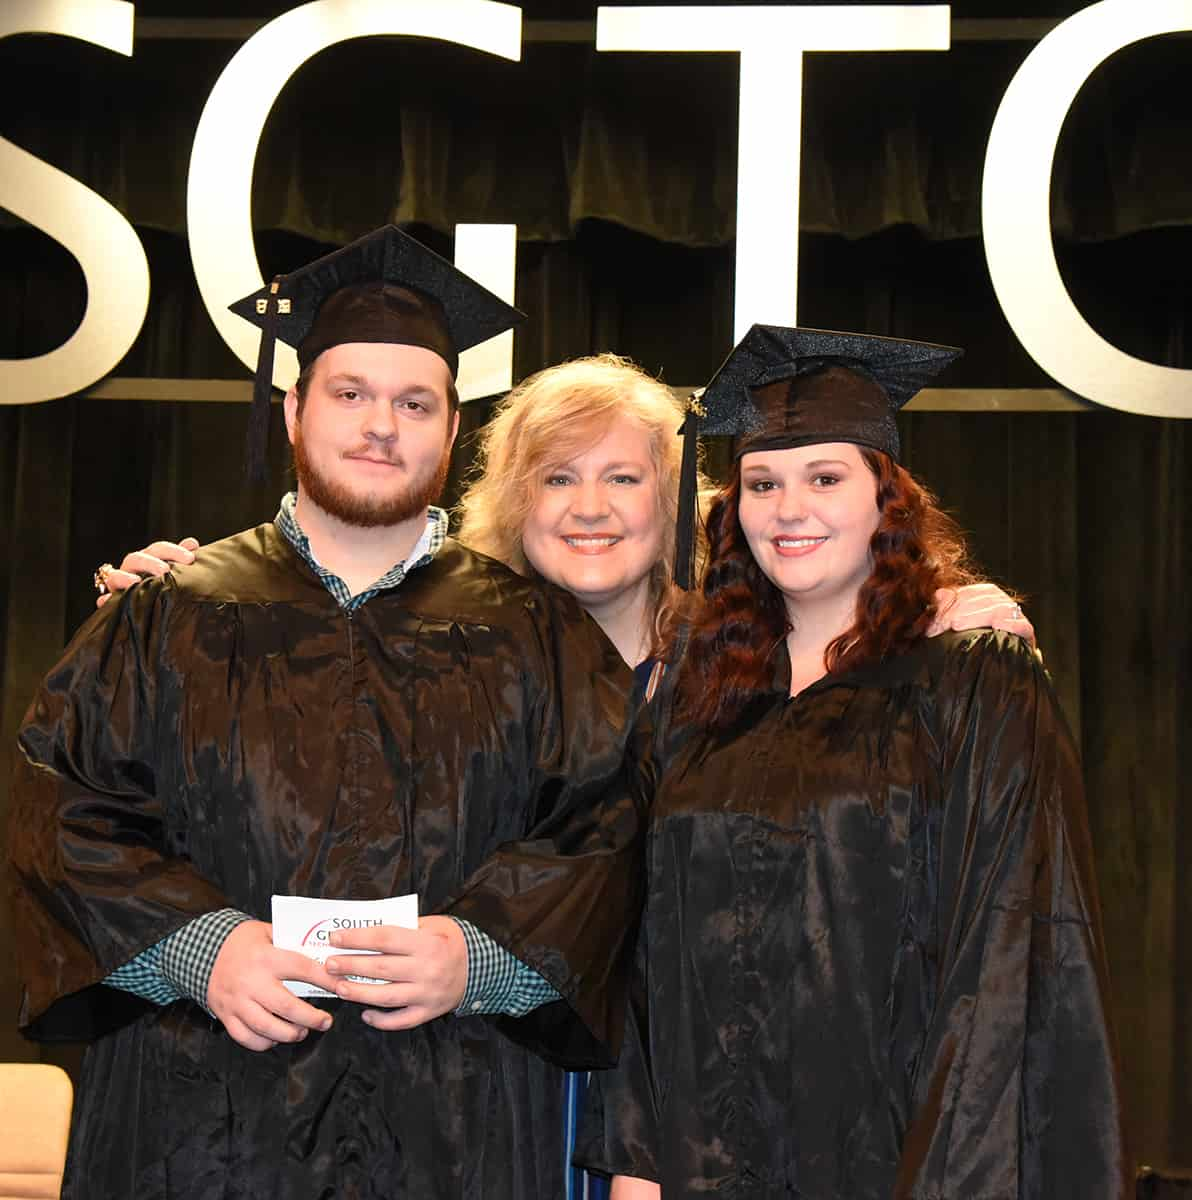 SGTC GED Instructor Alanna Goolsby is shown above with the Taylor County GED graduates.